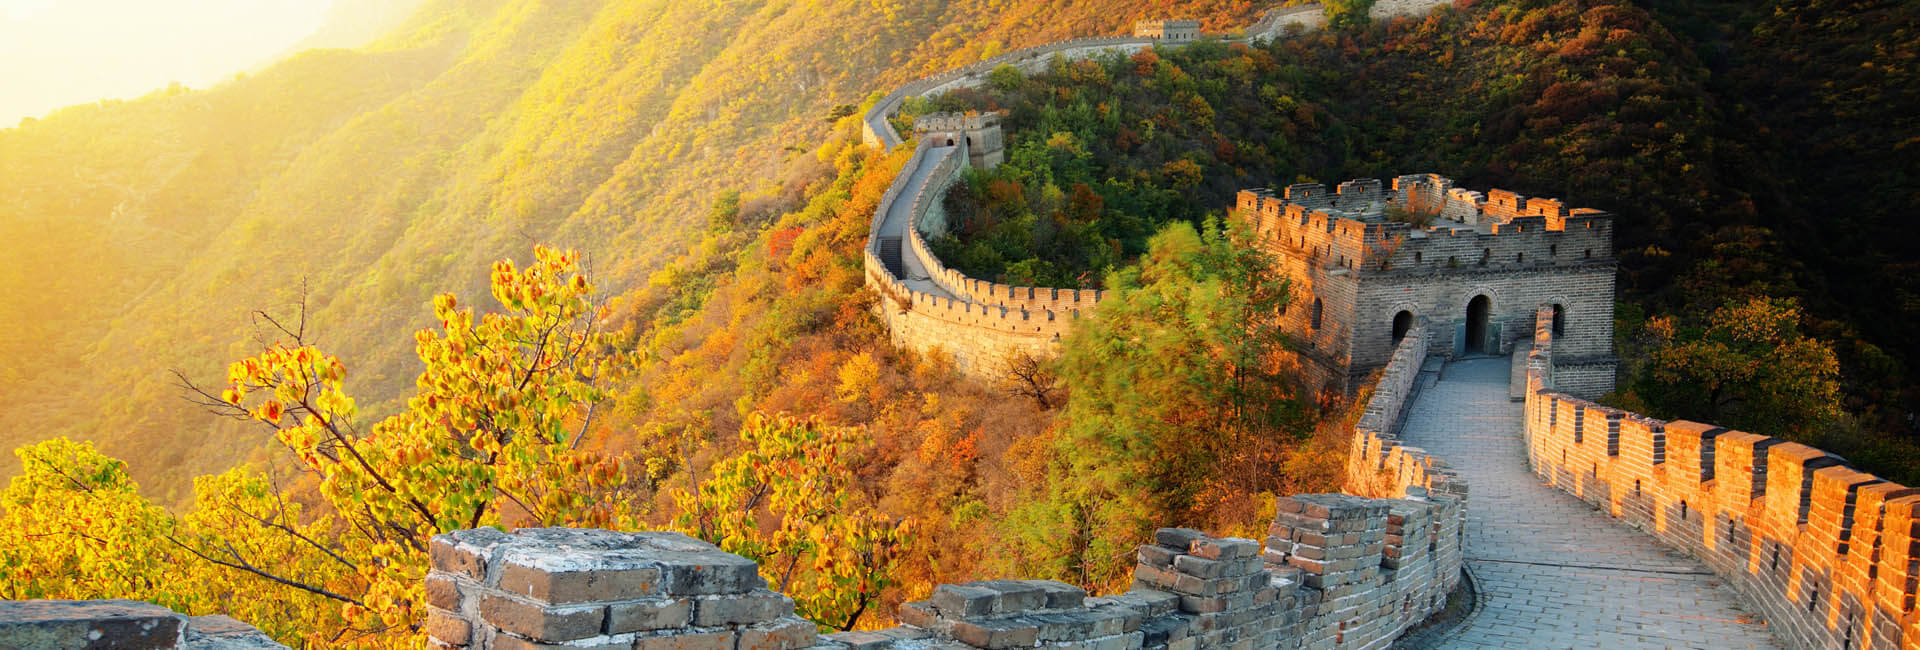 8 Days Beijing Shanghai Essence Tour with Mt. Huang Hiking